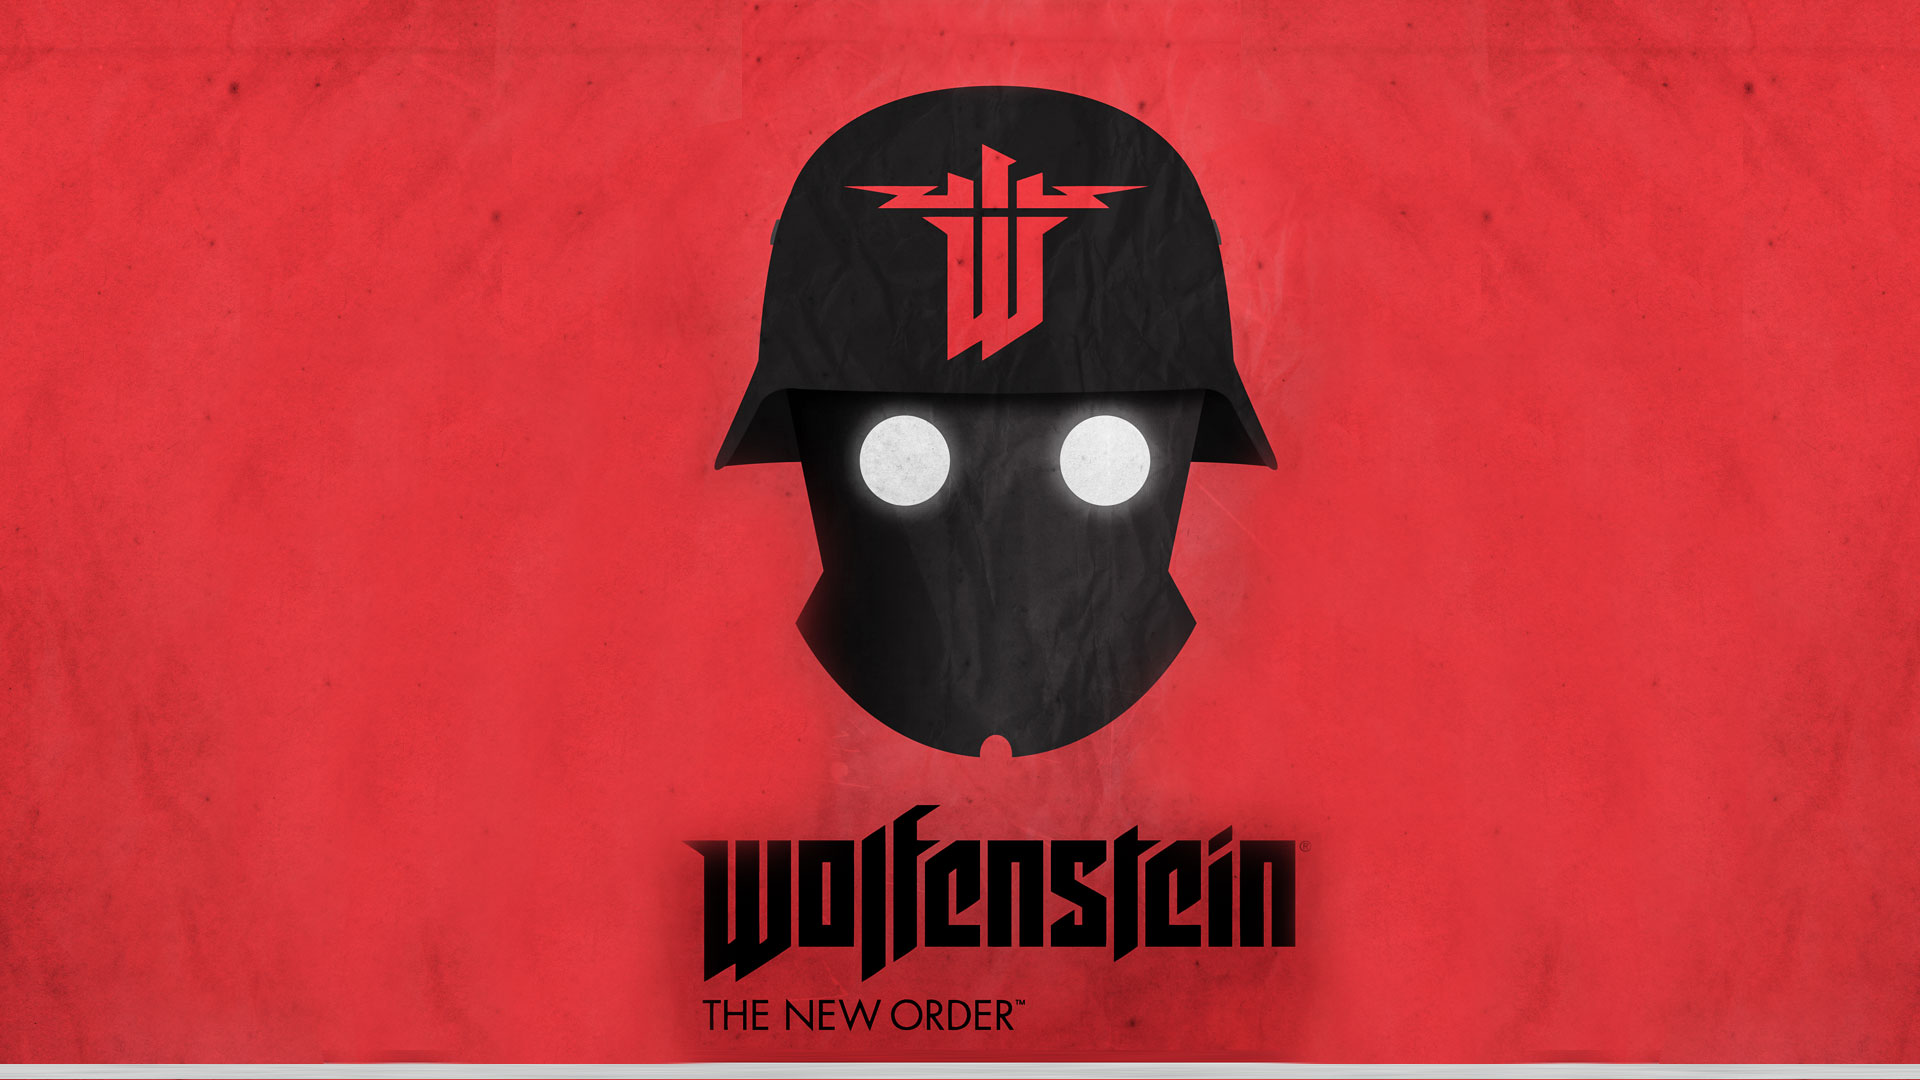 WOLFENSTEİN: THE NEW ORDER İNCELEMESİ